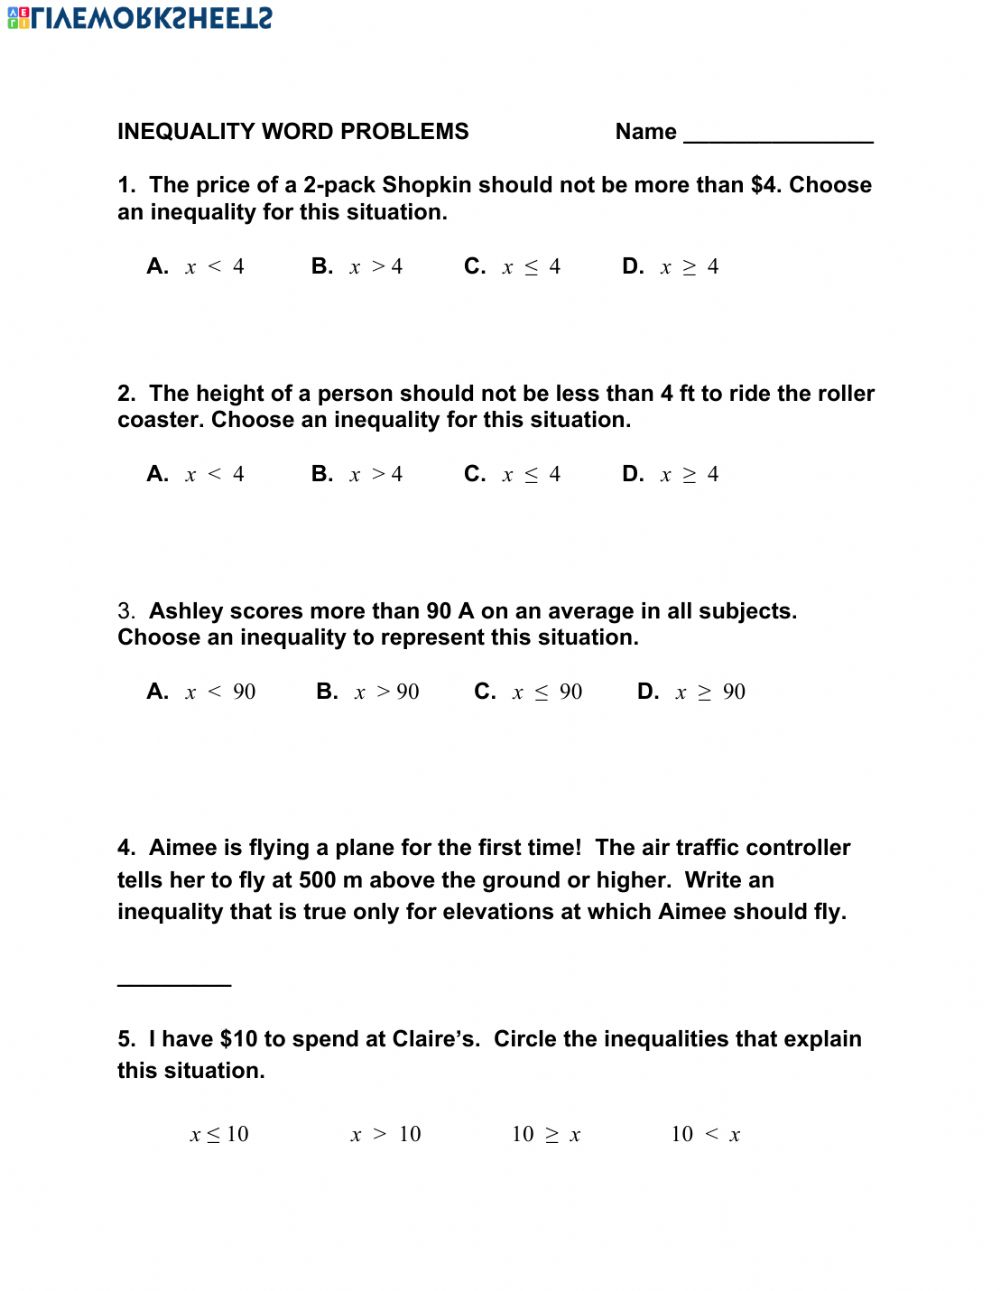 Writing Inequalities From Word Problems Worksheet Pdf